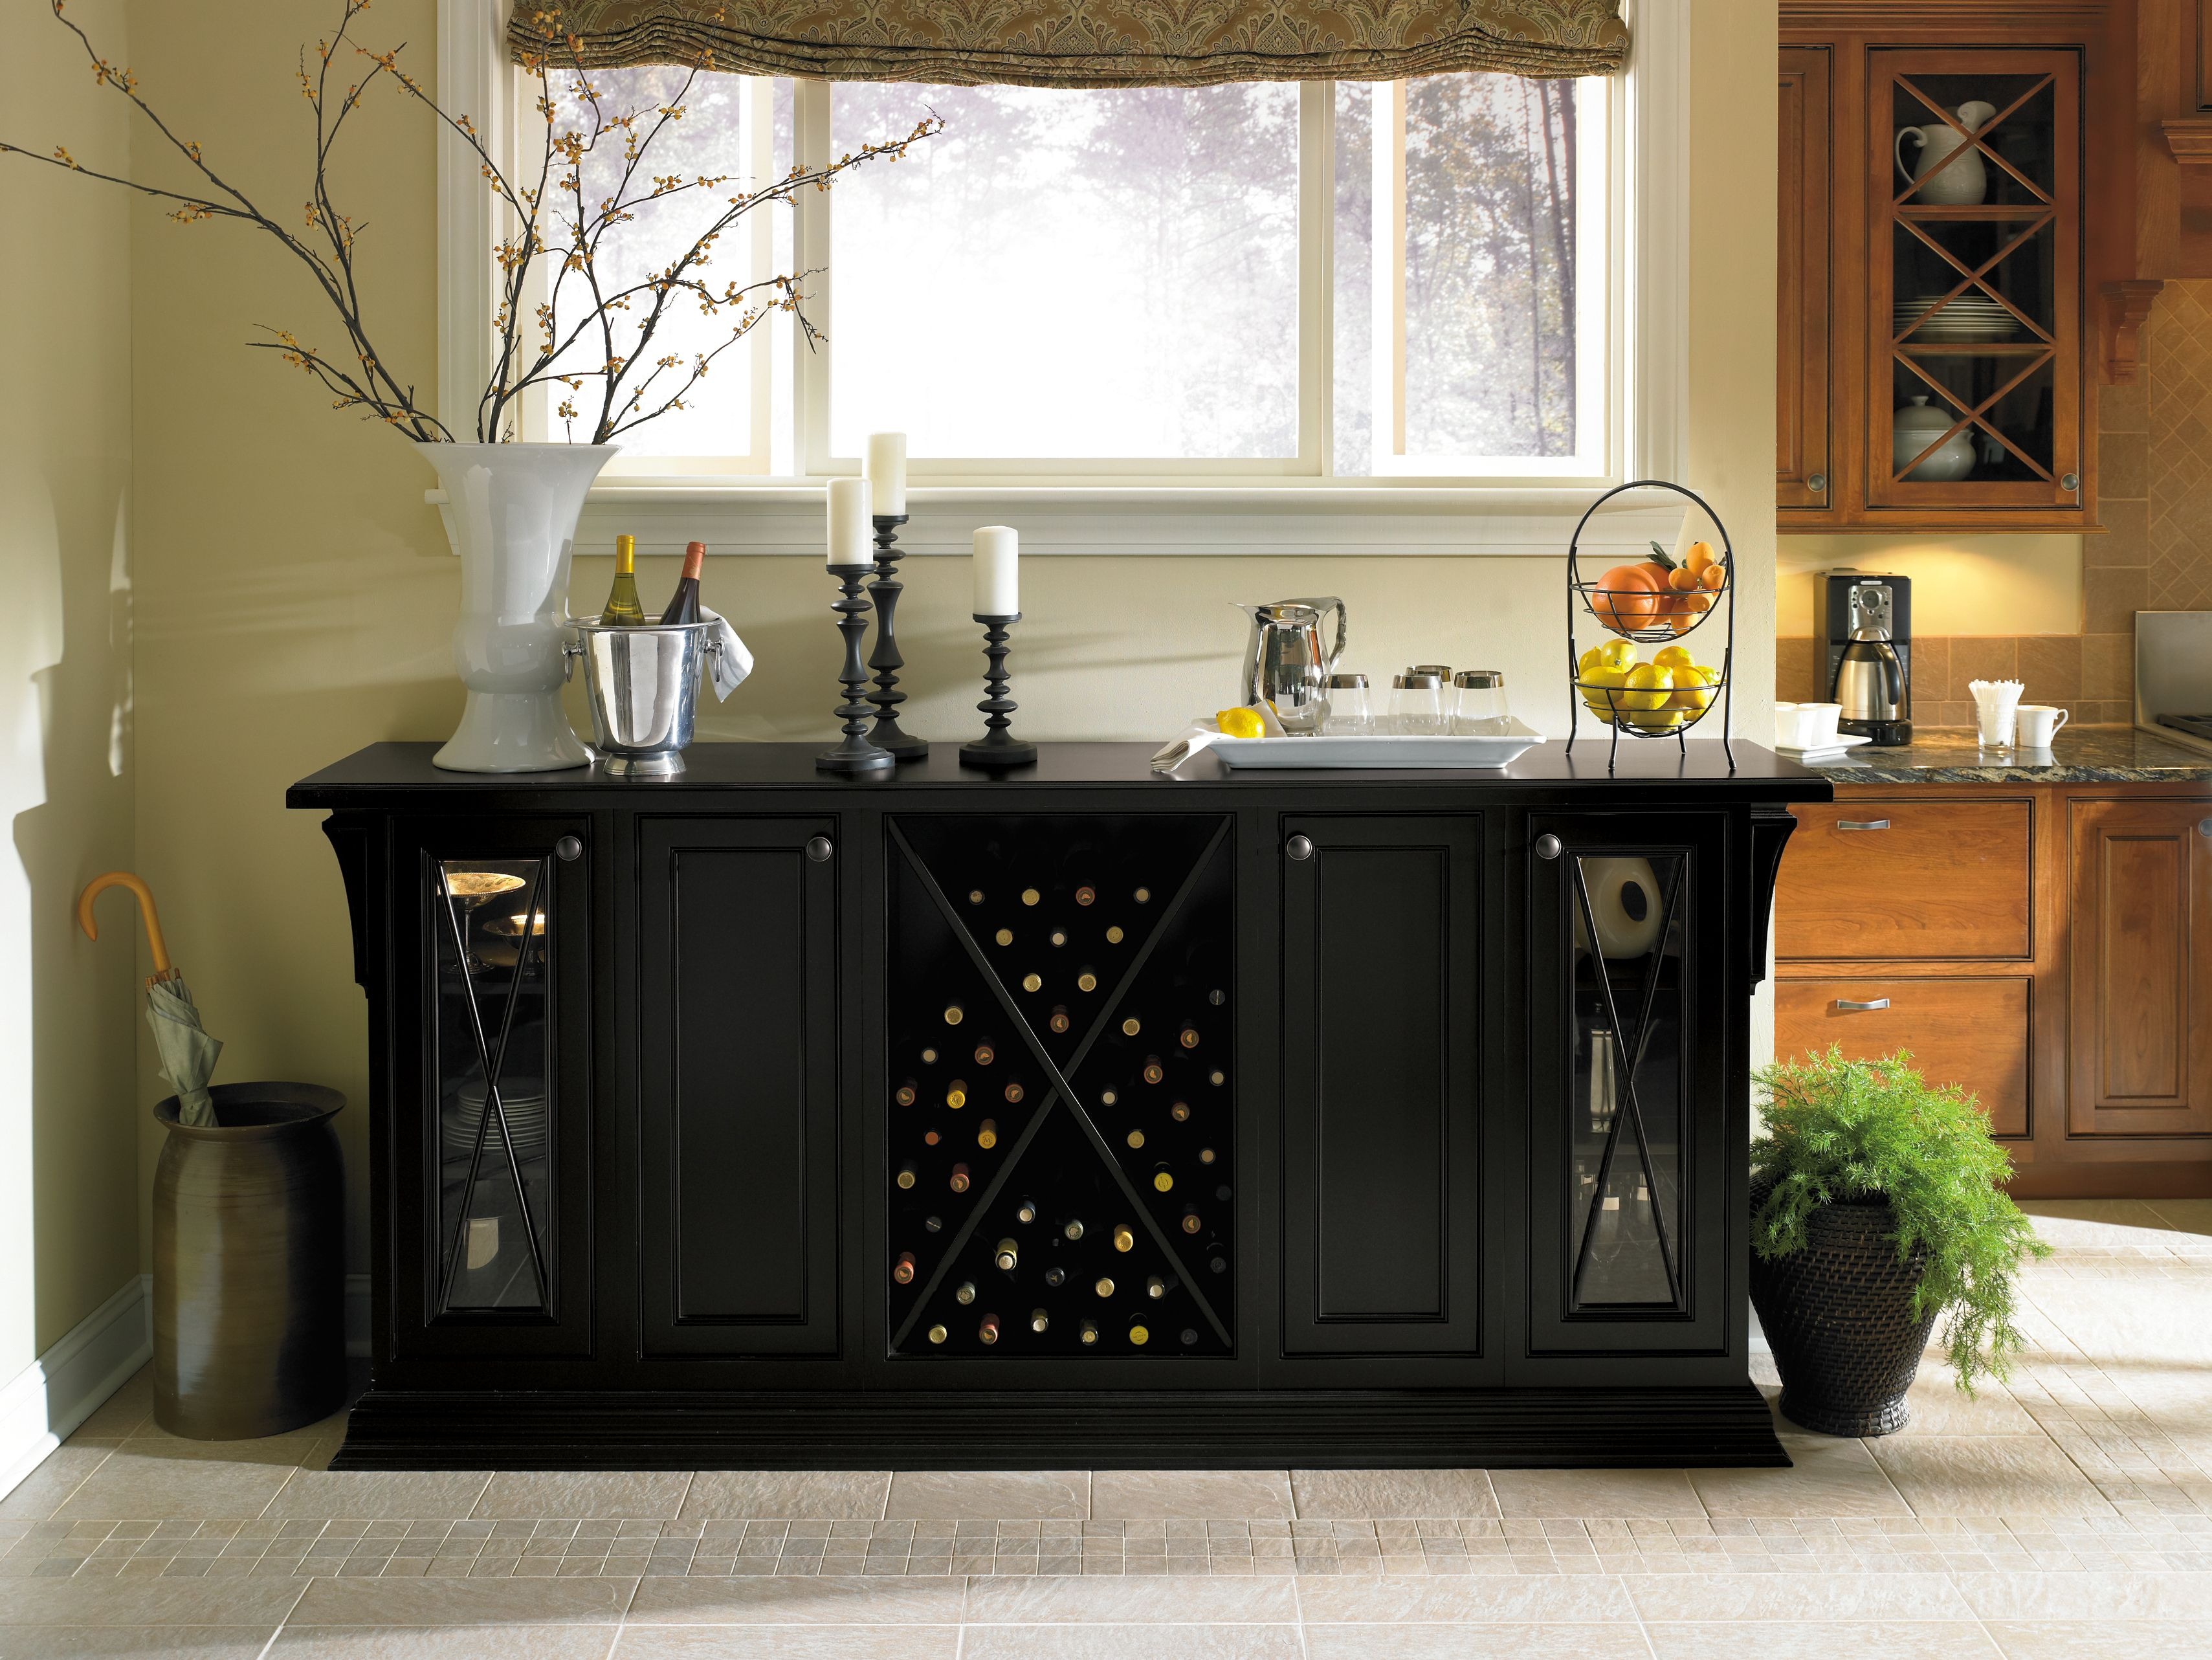 Dynasty By Omega Furniture Piece Omega Cabinetry Dining Room Cabinet Home Bar Cabinet